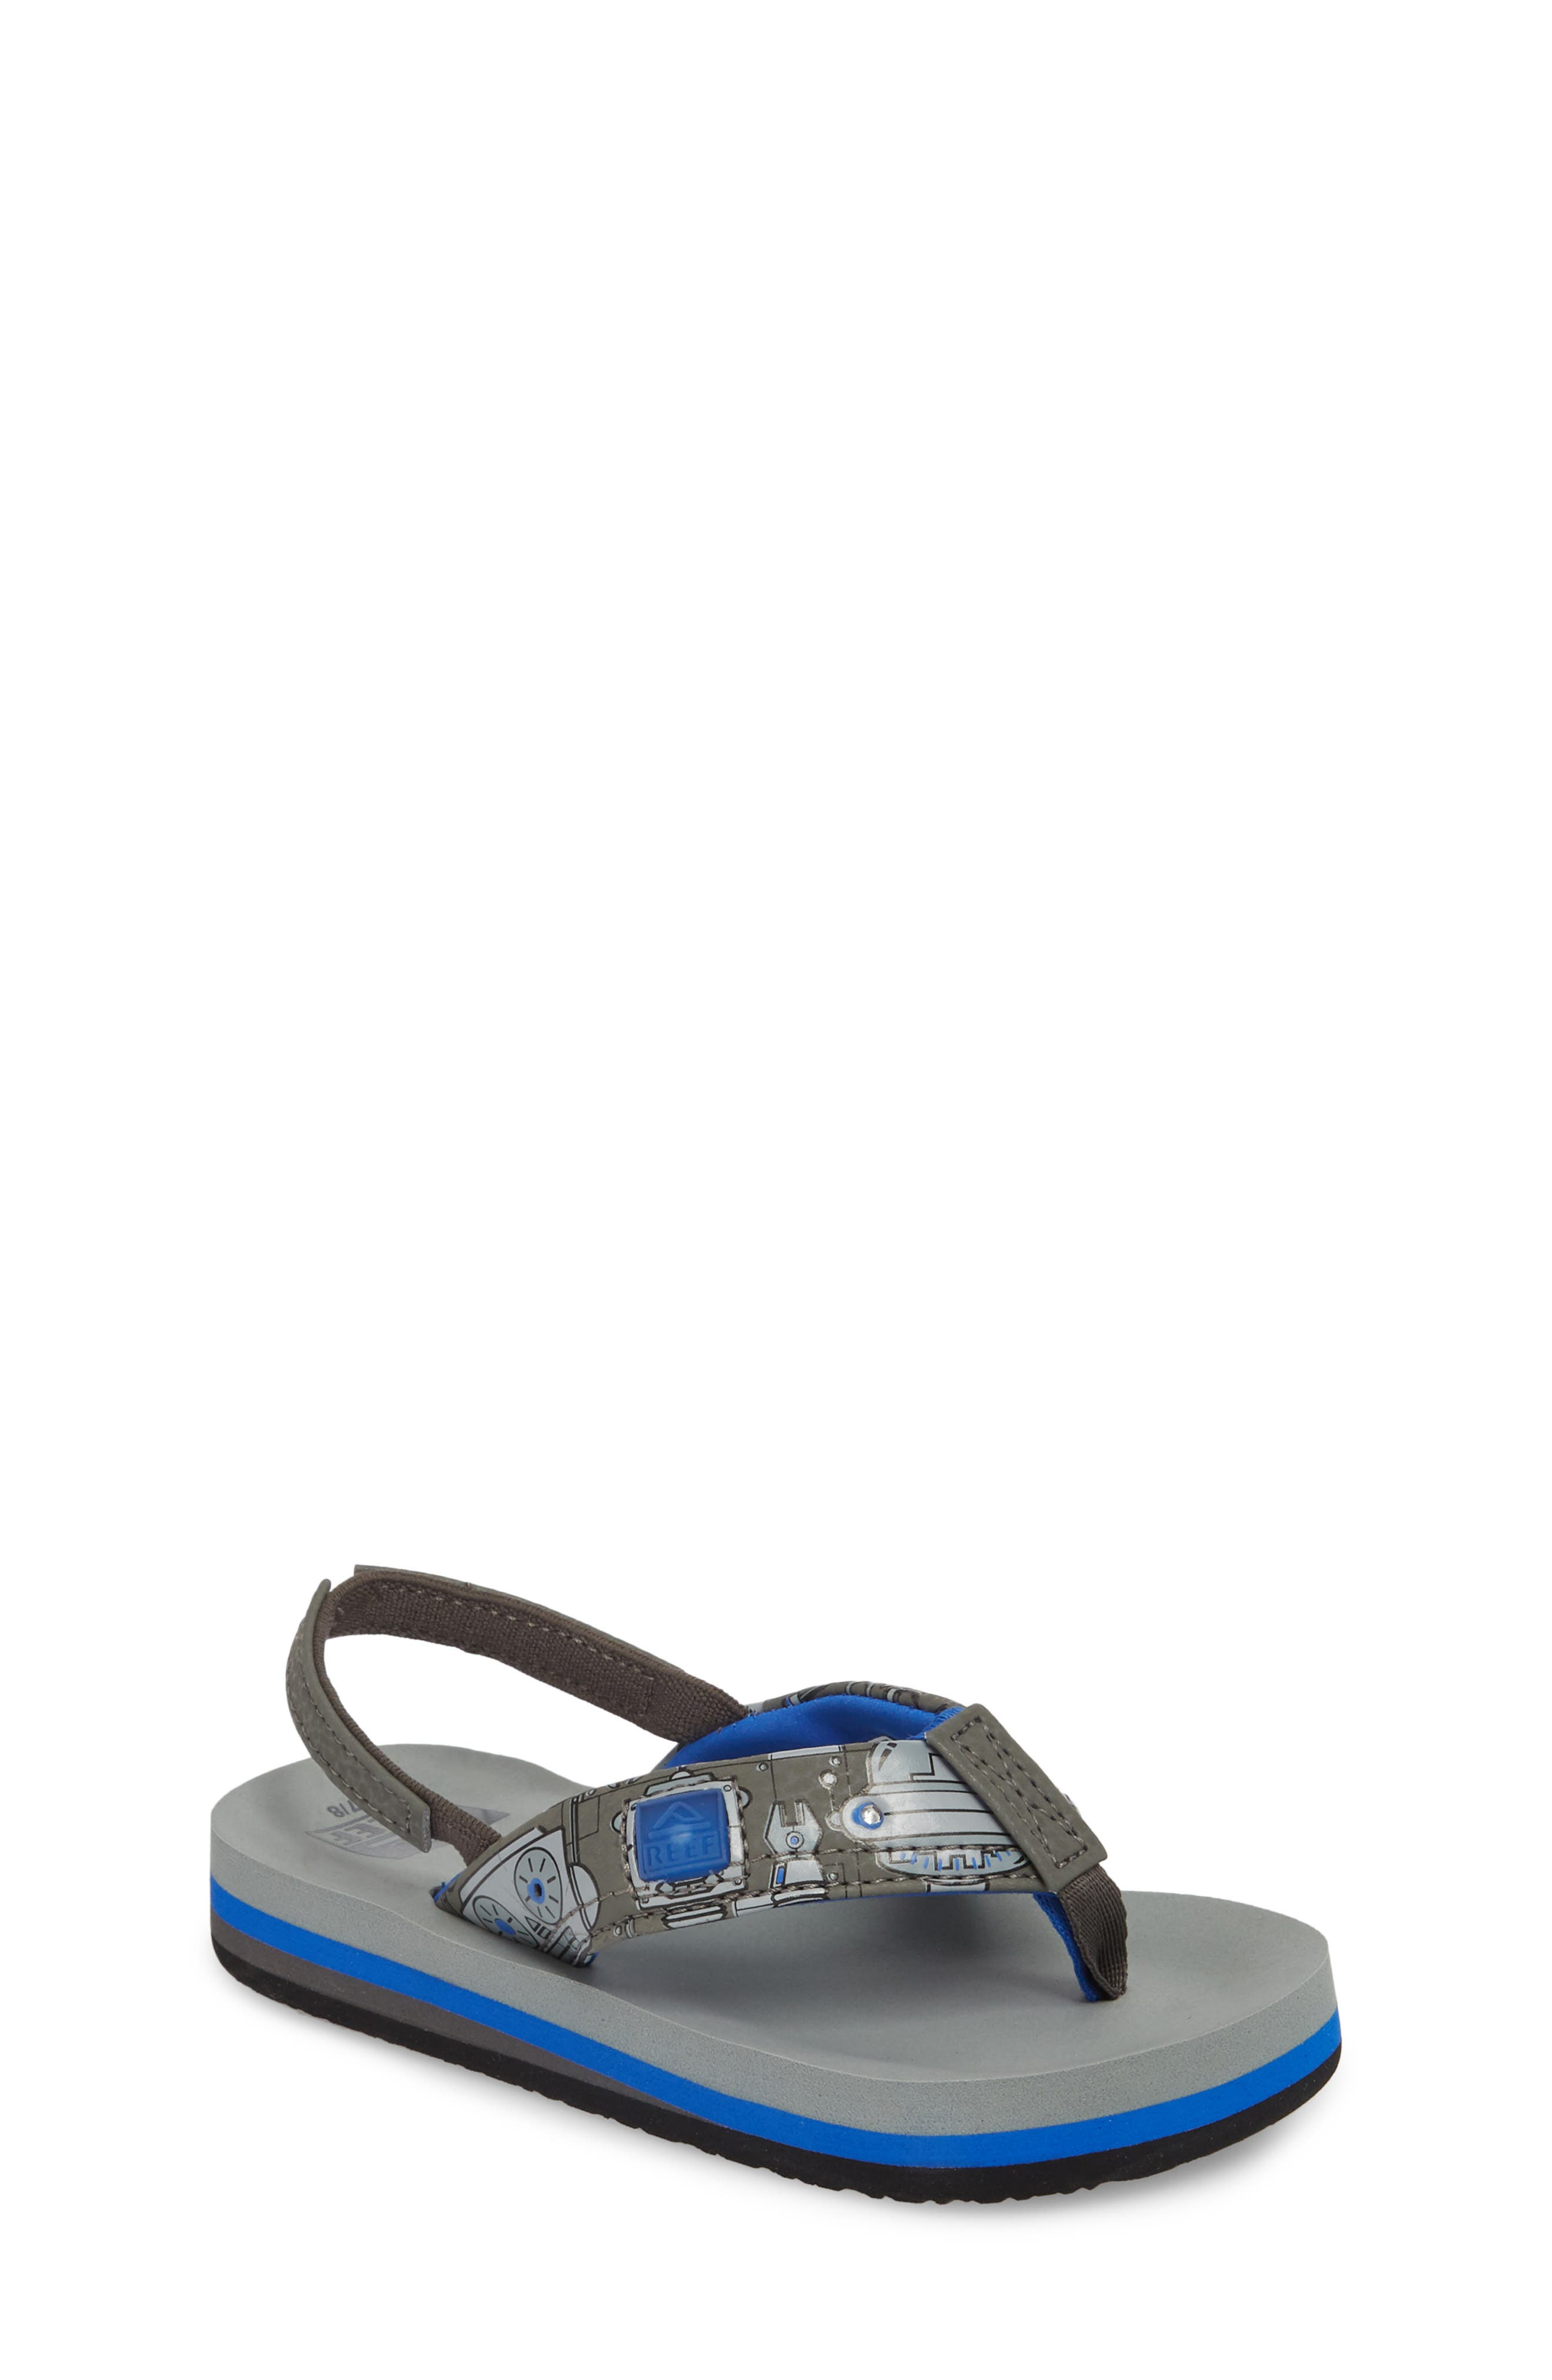 Ahi Light-Up Flip Flop,                             Main thumbnail 1, color,                             Grey